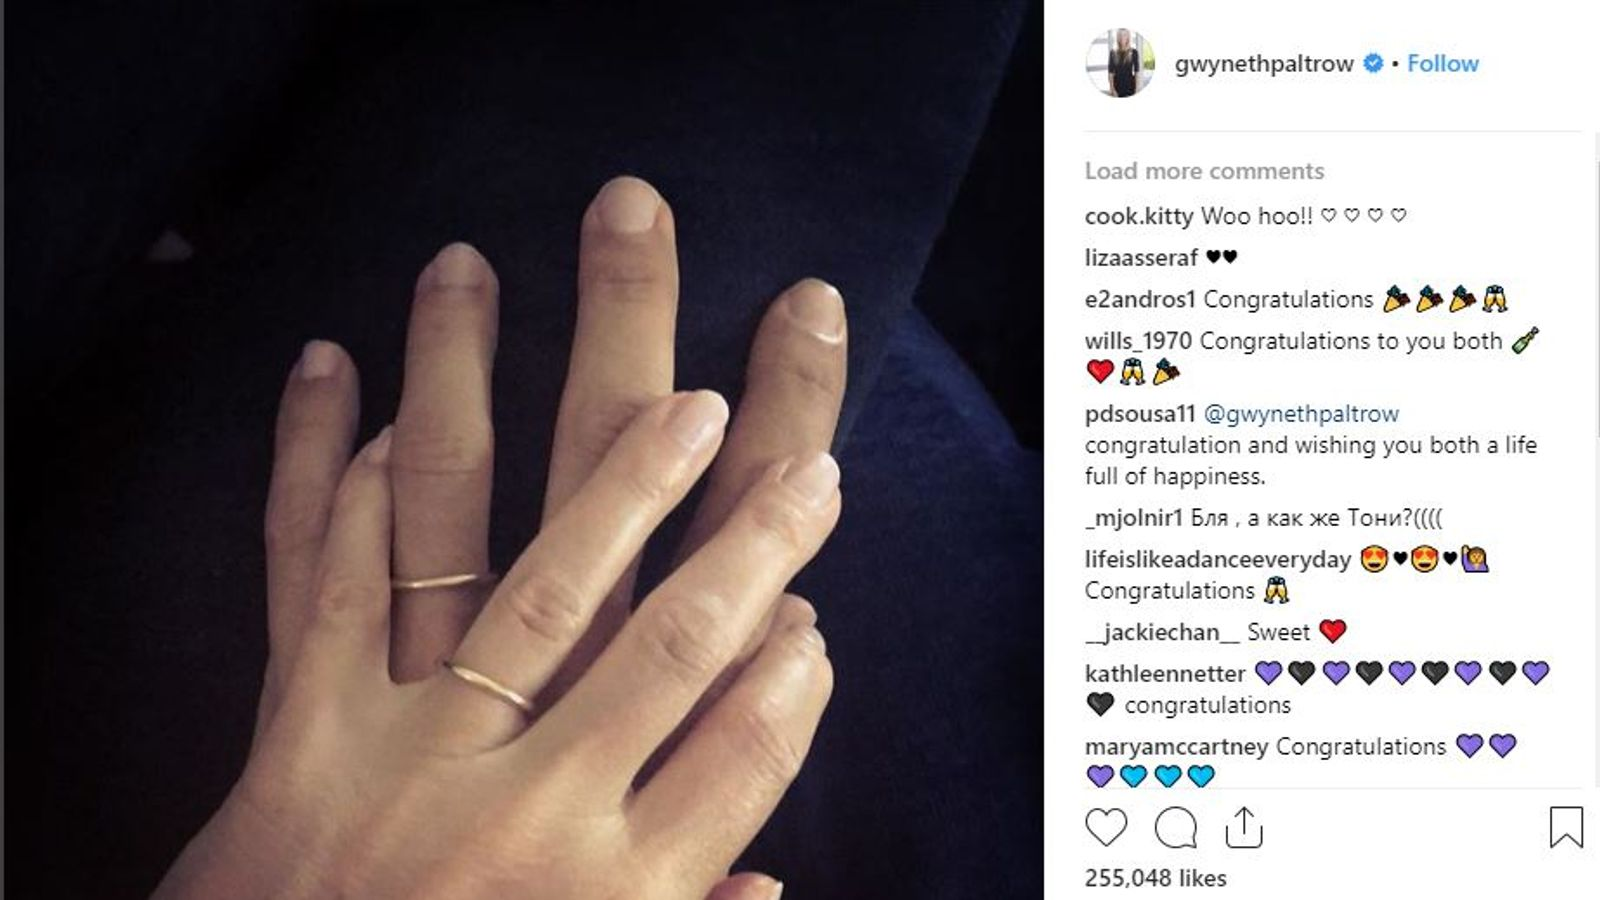 Put a ring on it! Gwyneth Paltrow remarries